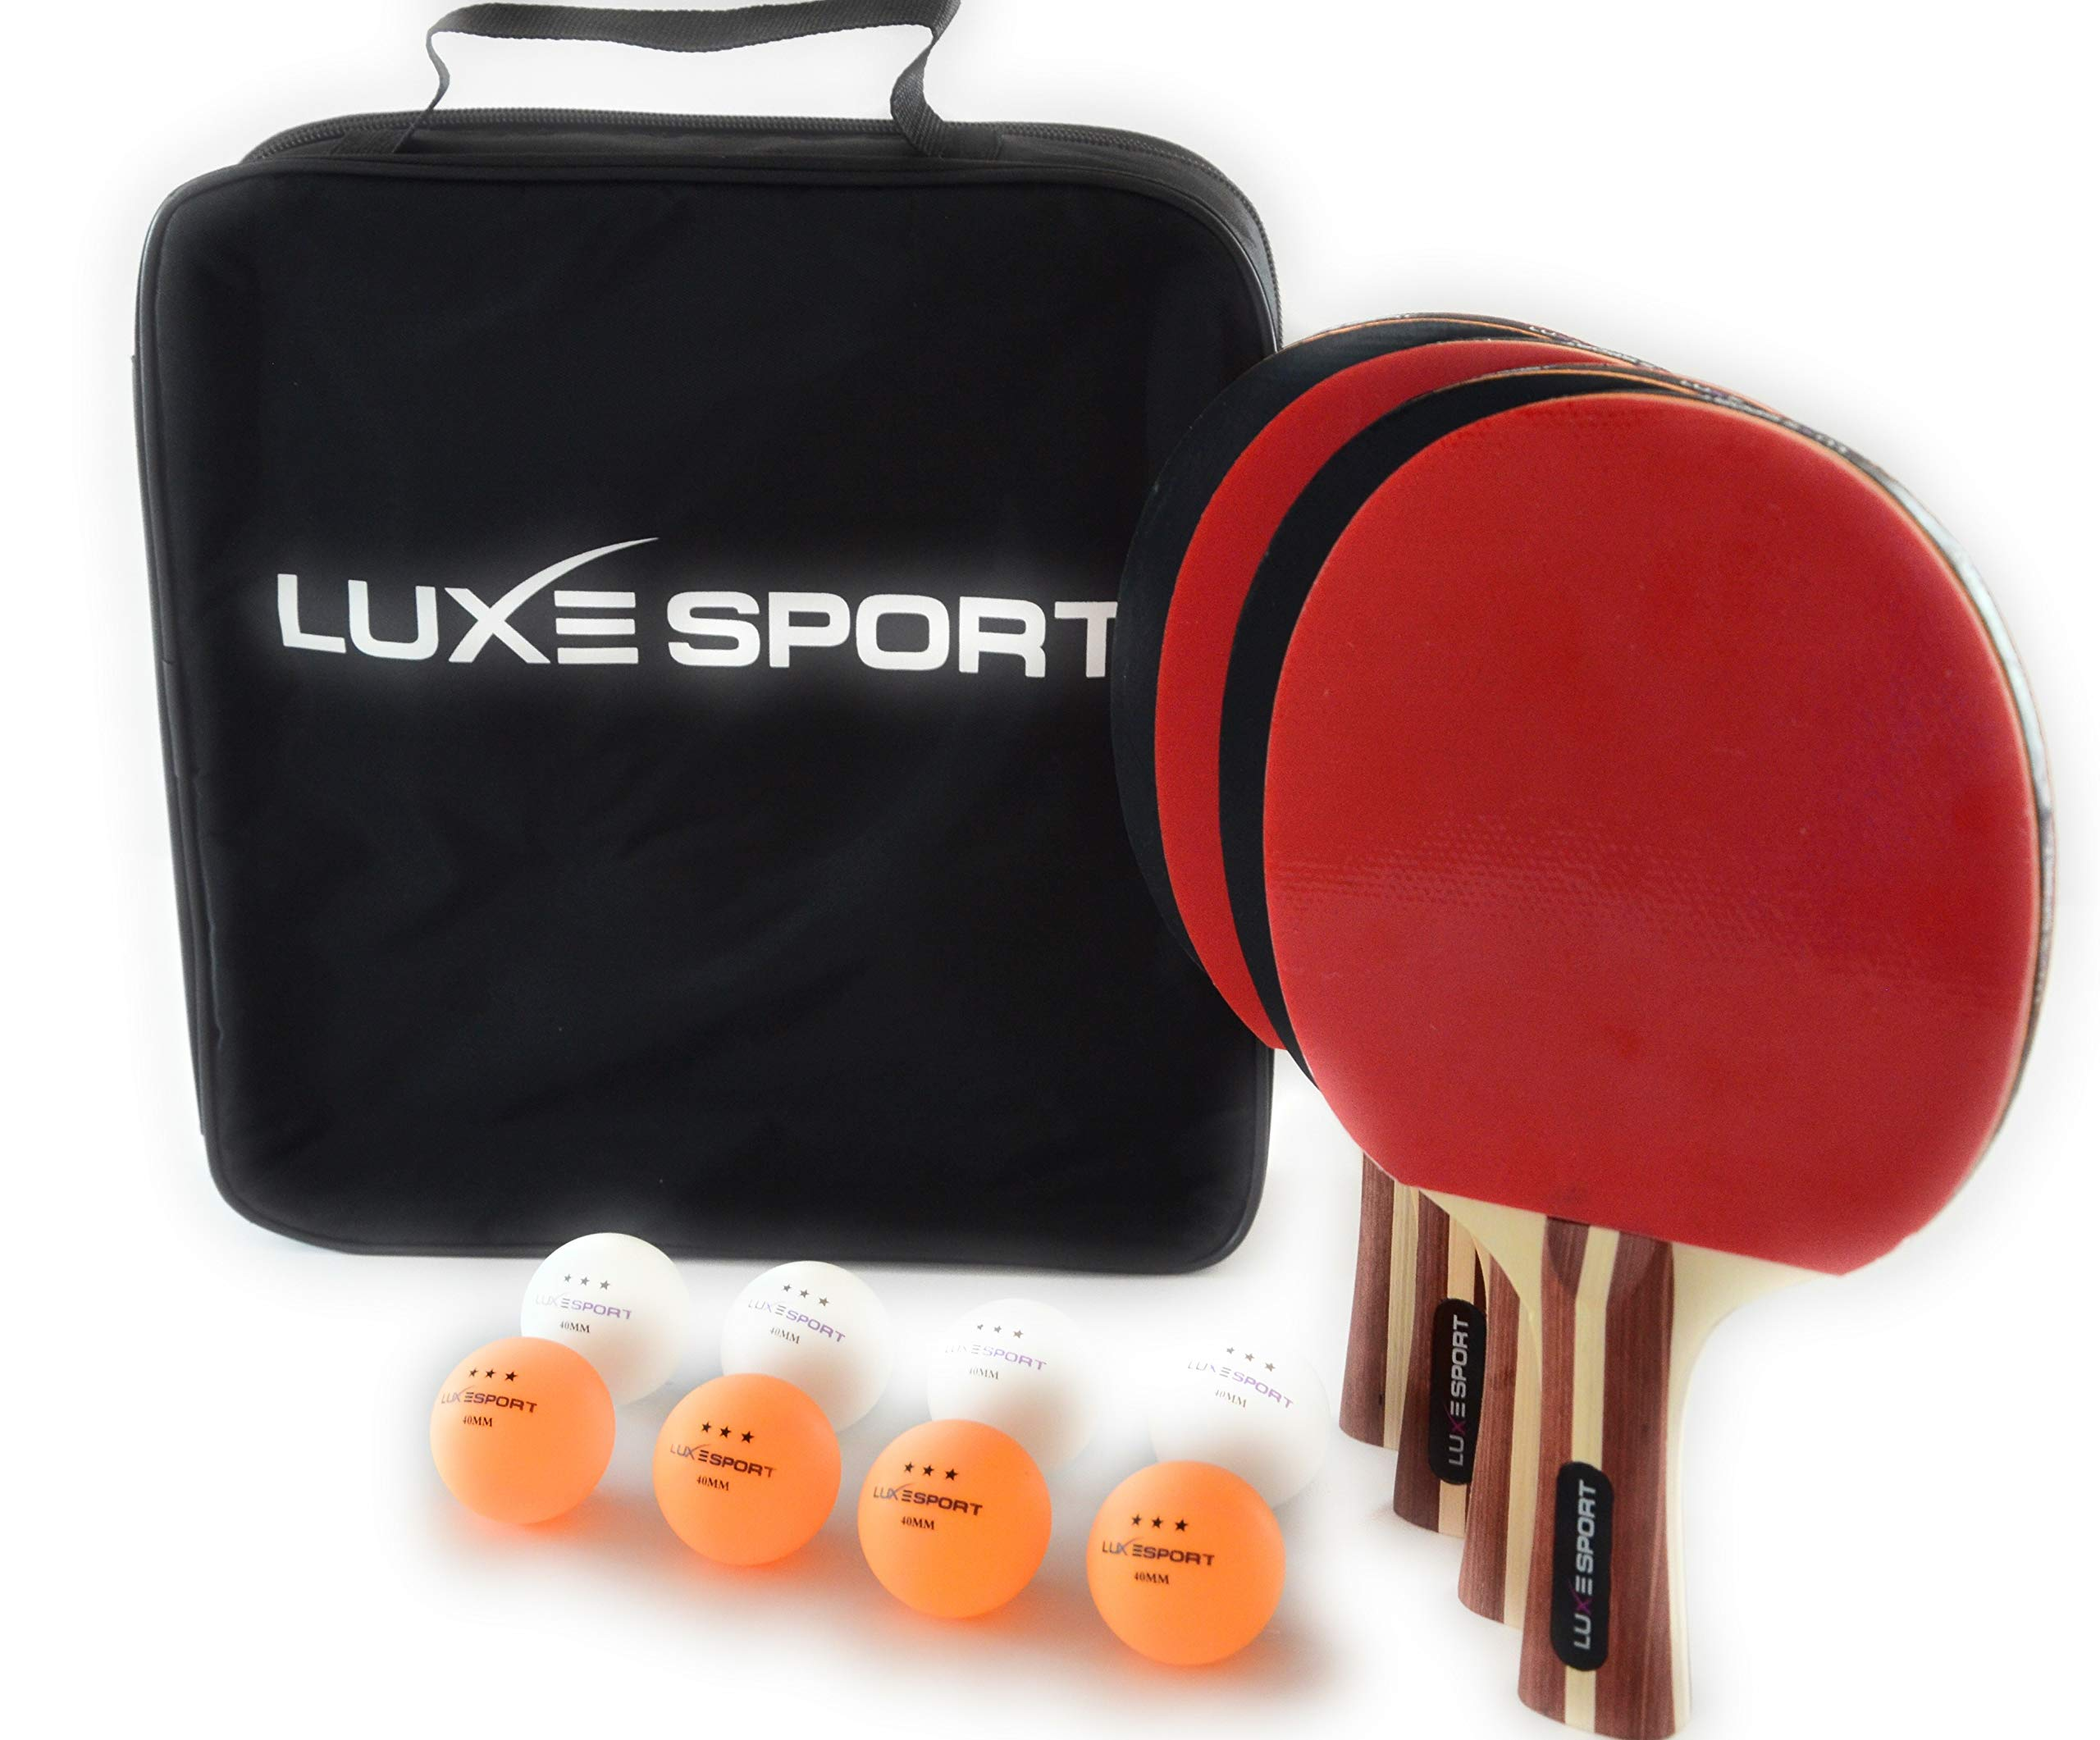 Ping Paddle Set of 4 - Full Table Tennis Bundle includes 4 Ping Pong Paddles, 8 Seamless 40mm Balls, Portable Storage Travel Bag/Case - Racket Kit for 2 or 4 Players - Recreational Indoor / Outdoor Games